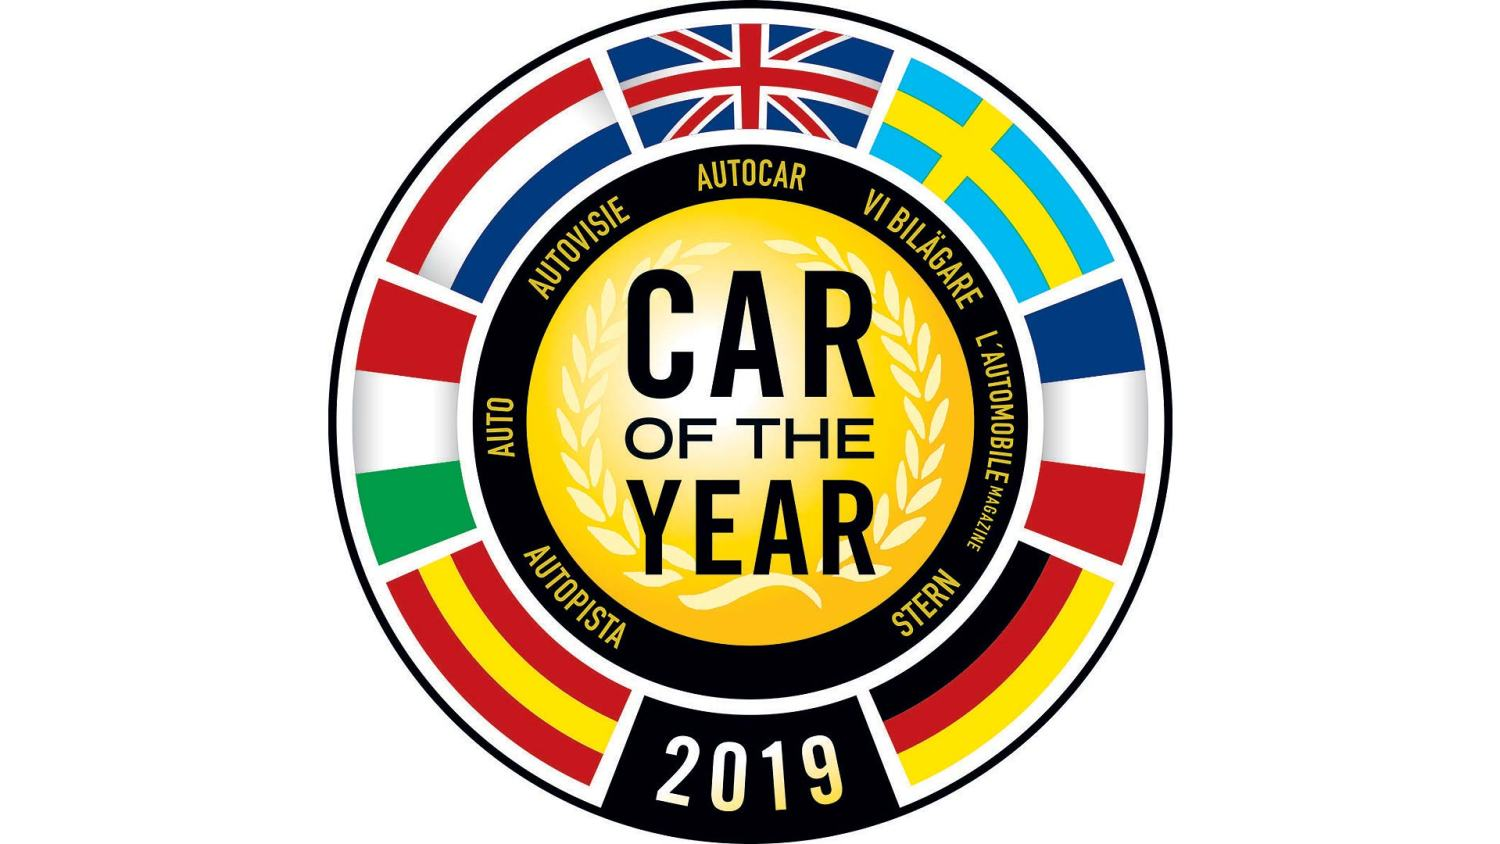 Car of the Year 2019 logo